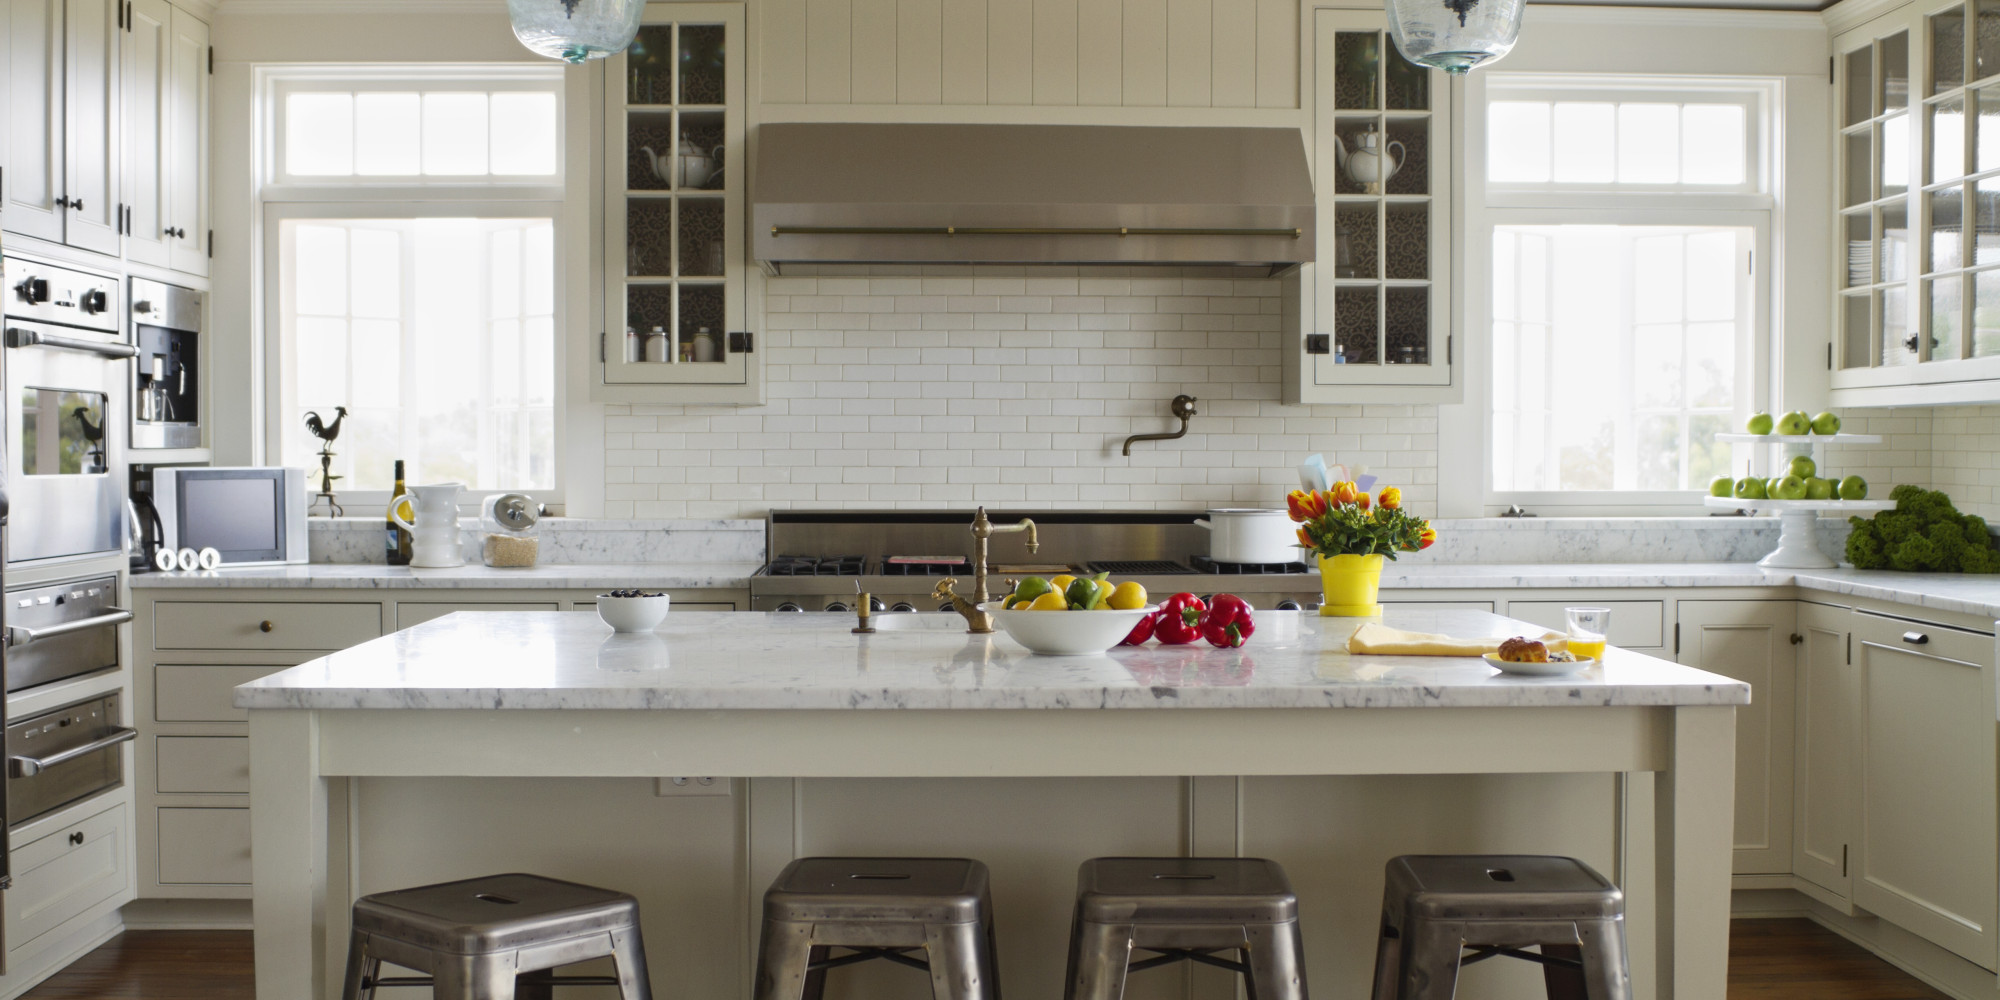 latest trends in kitchen backsplashes the 3 kitchen trends of 2014 might you 25012